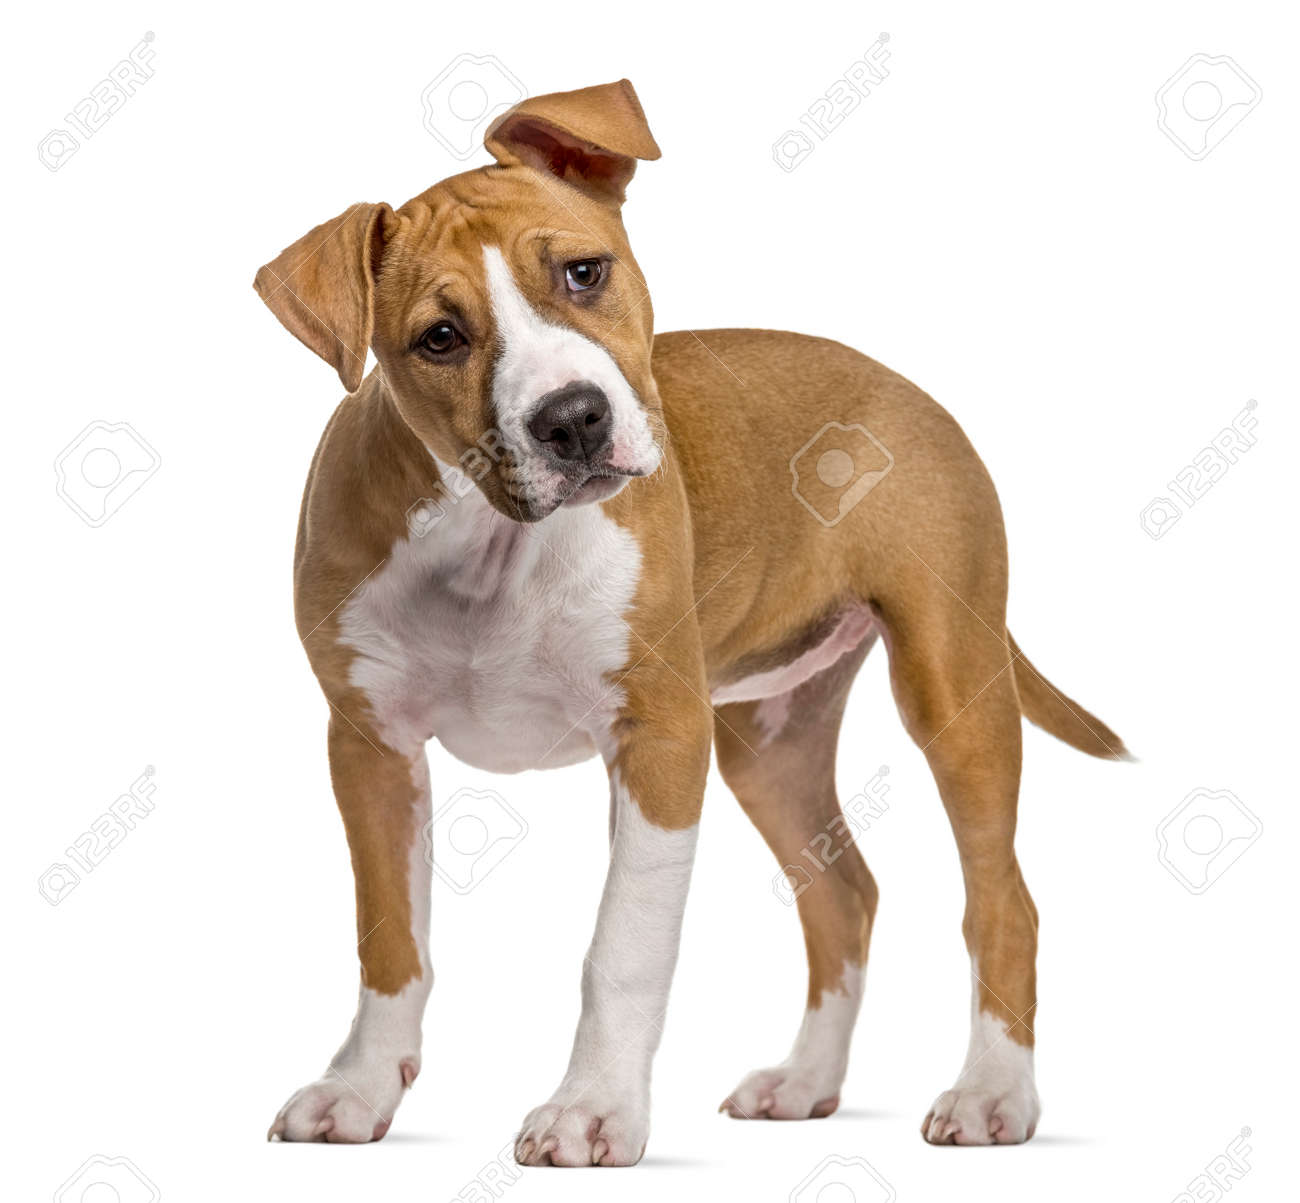 American Staffordshire Terrier puppy, 4 months old, isolated